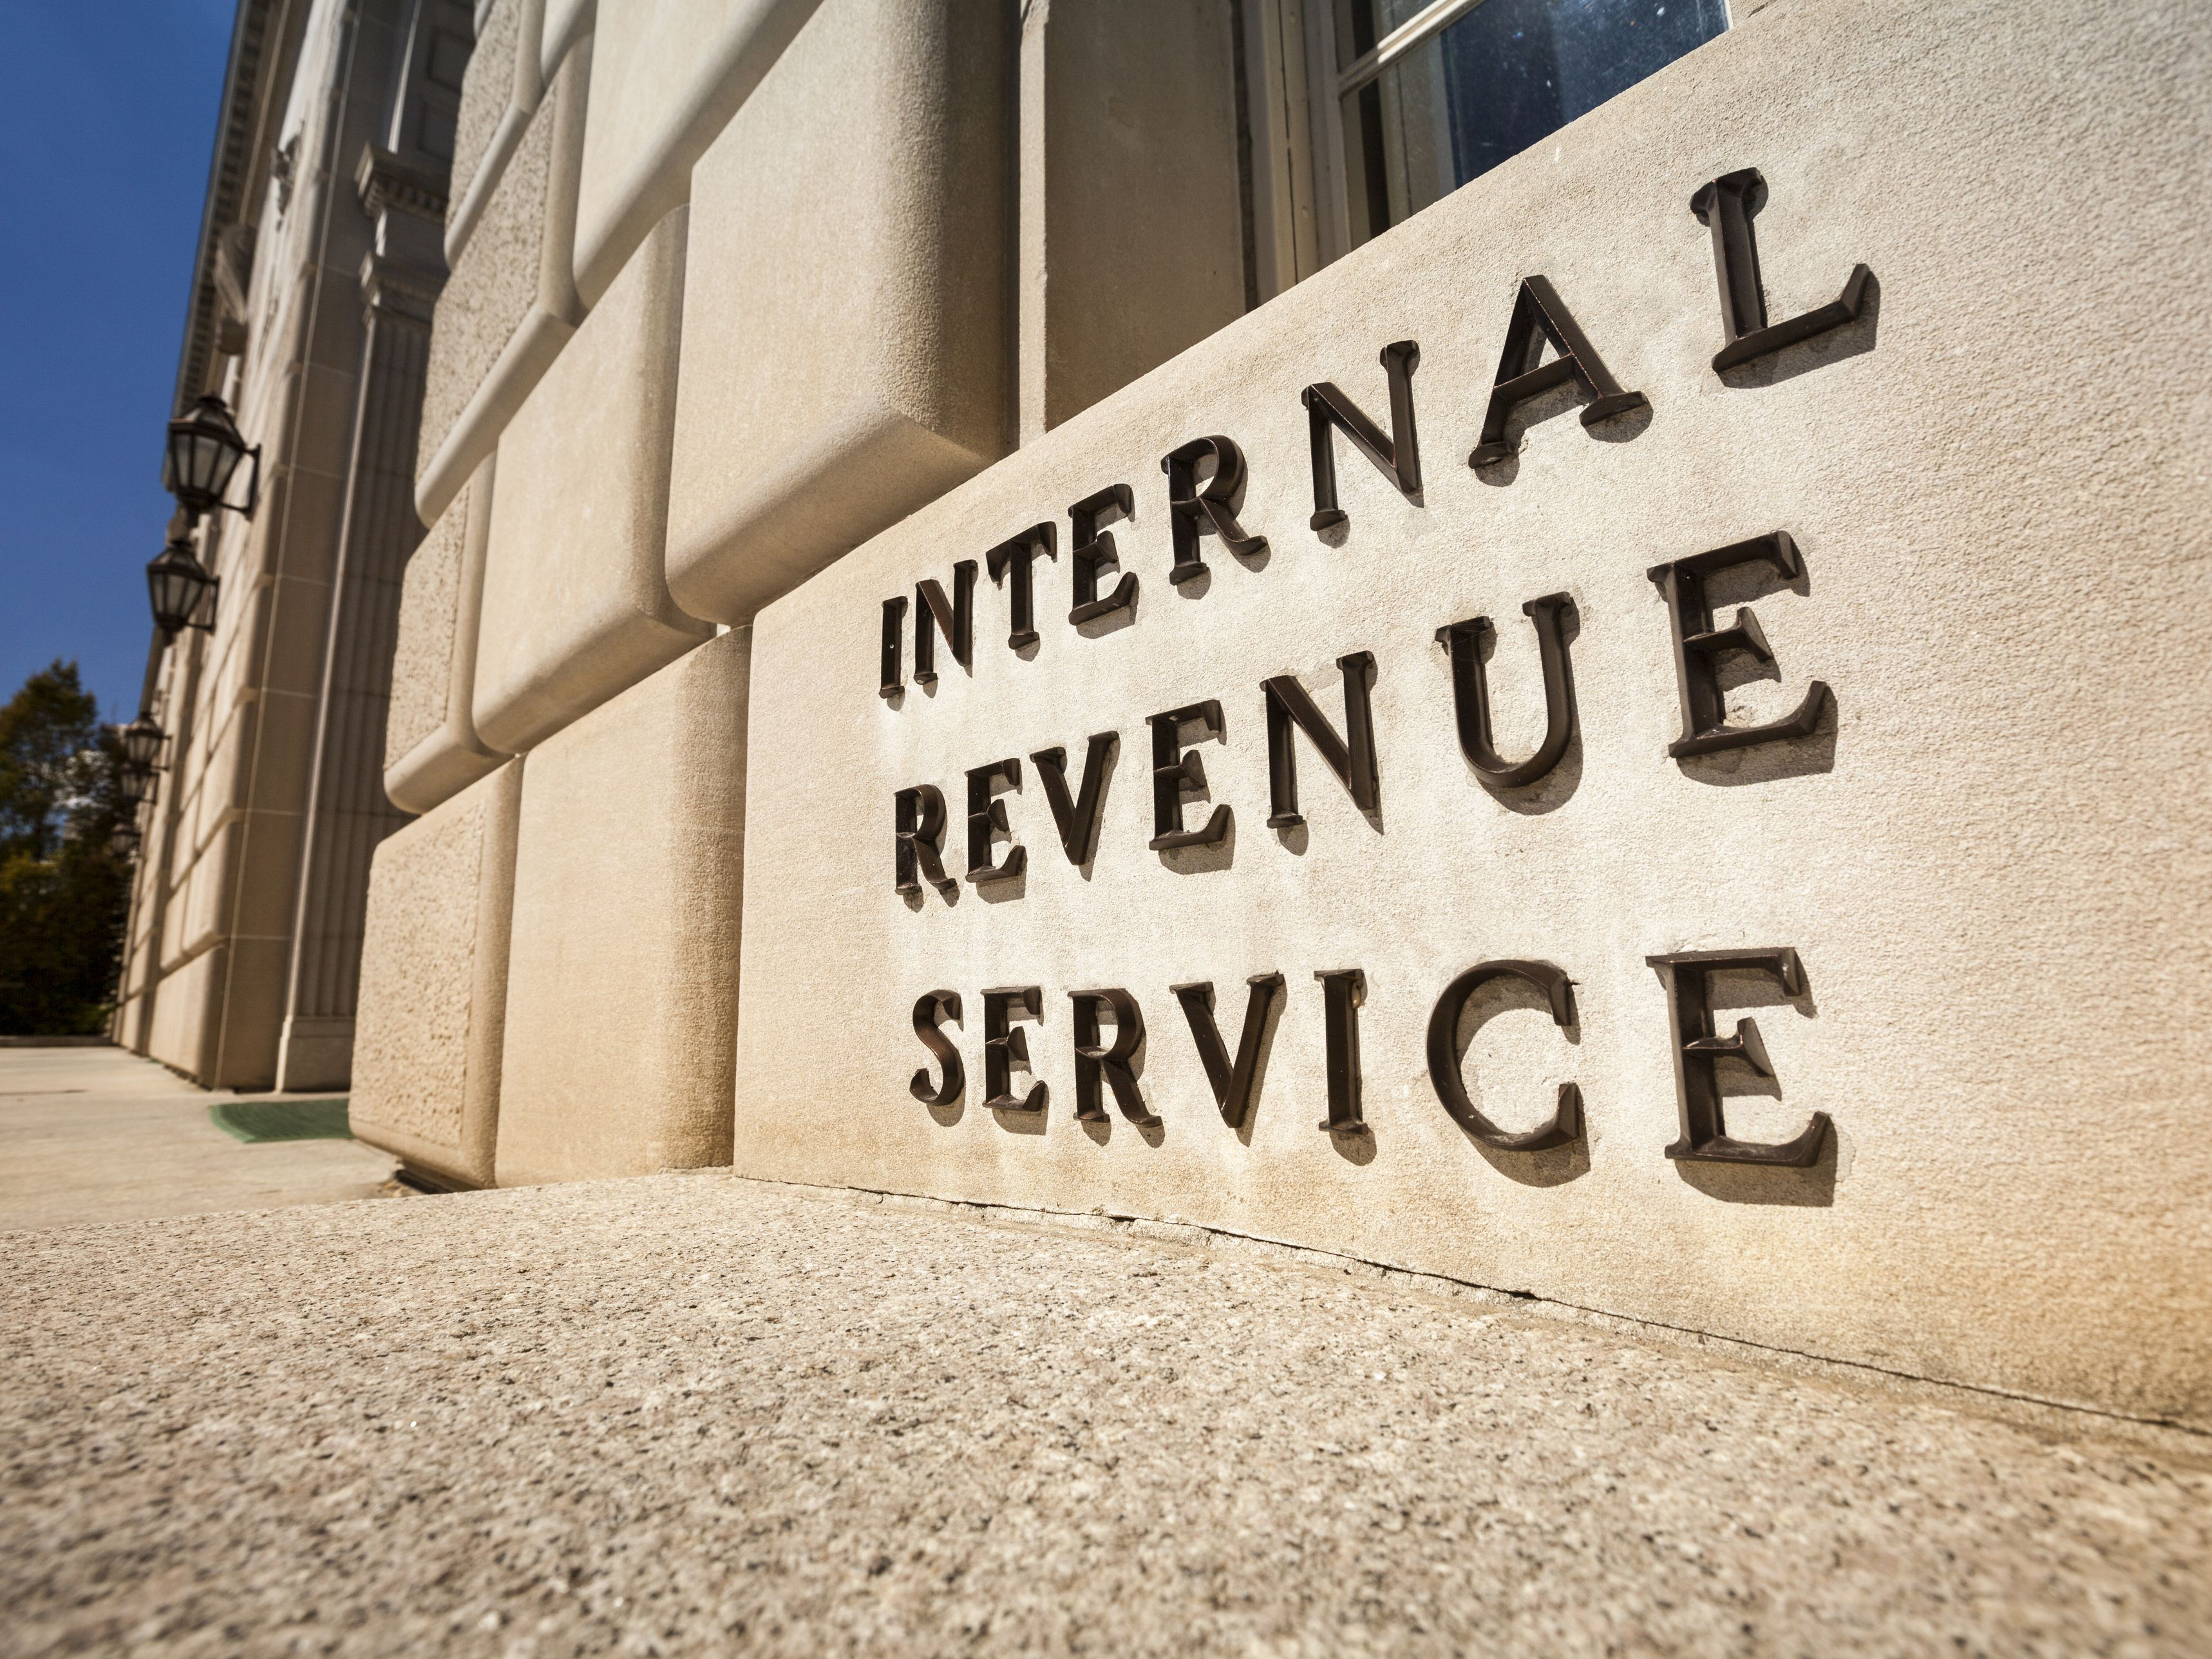 Suspected Crypto Tax Evaders Get Internal Revenue Service (IRS) Letter